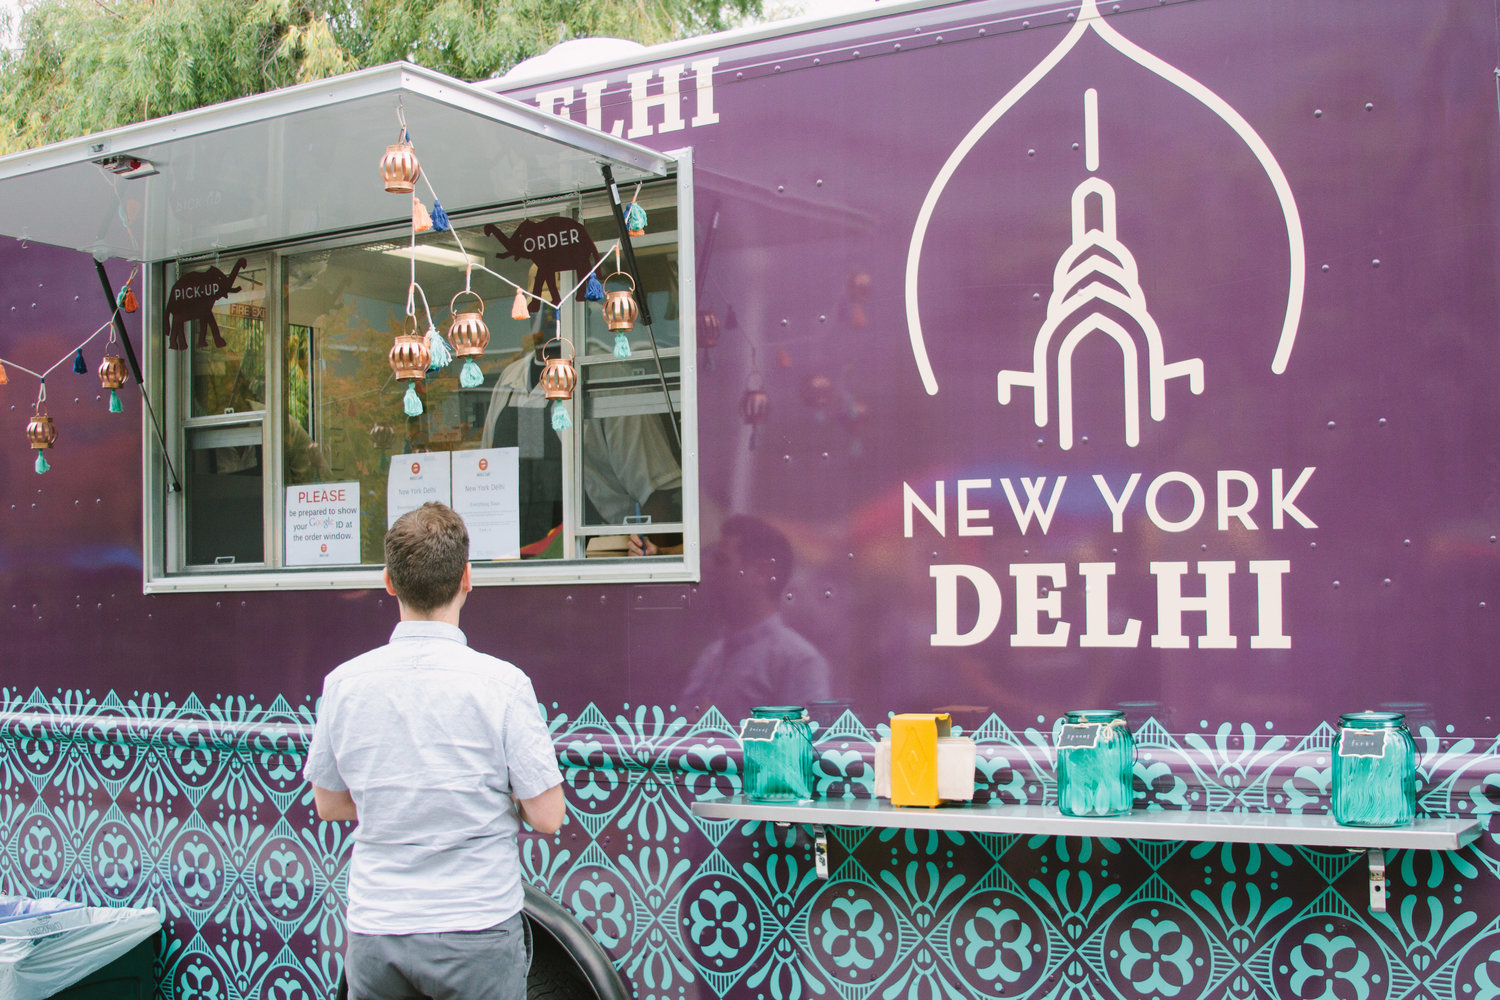 Just one of 20 food trucks Google employees will be able to dine at.